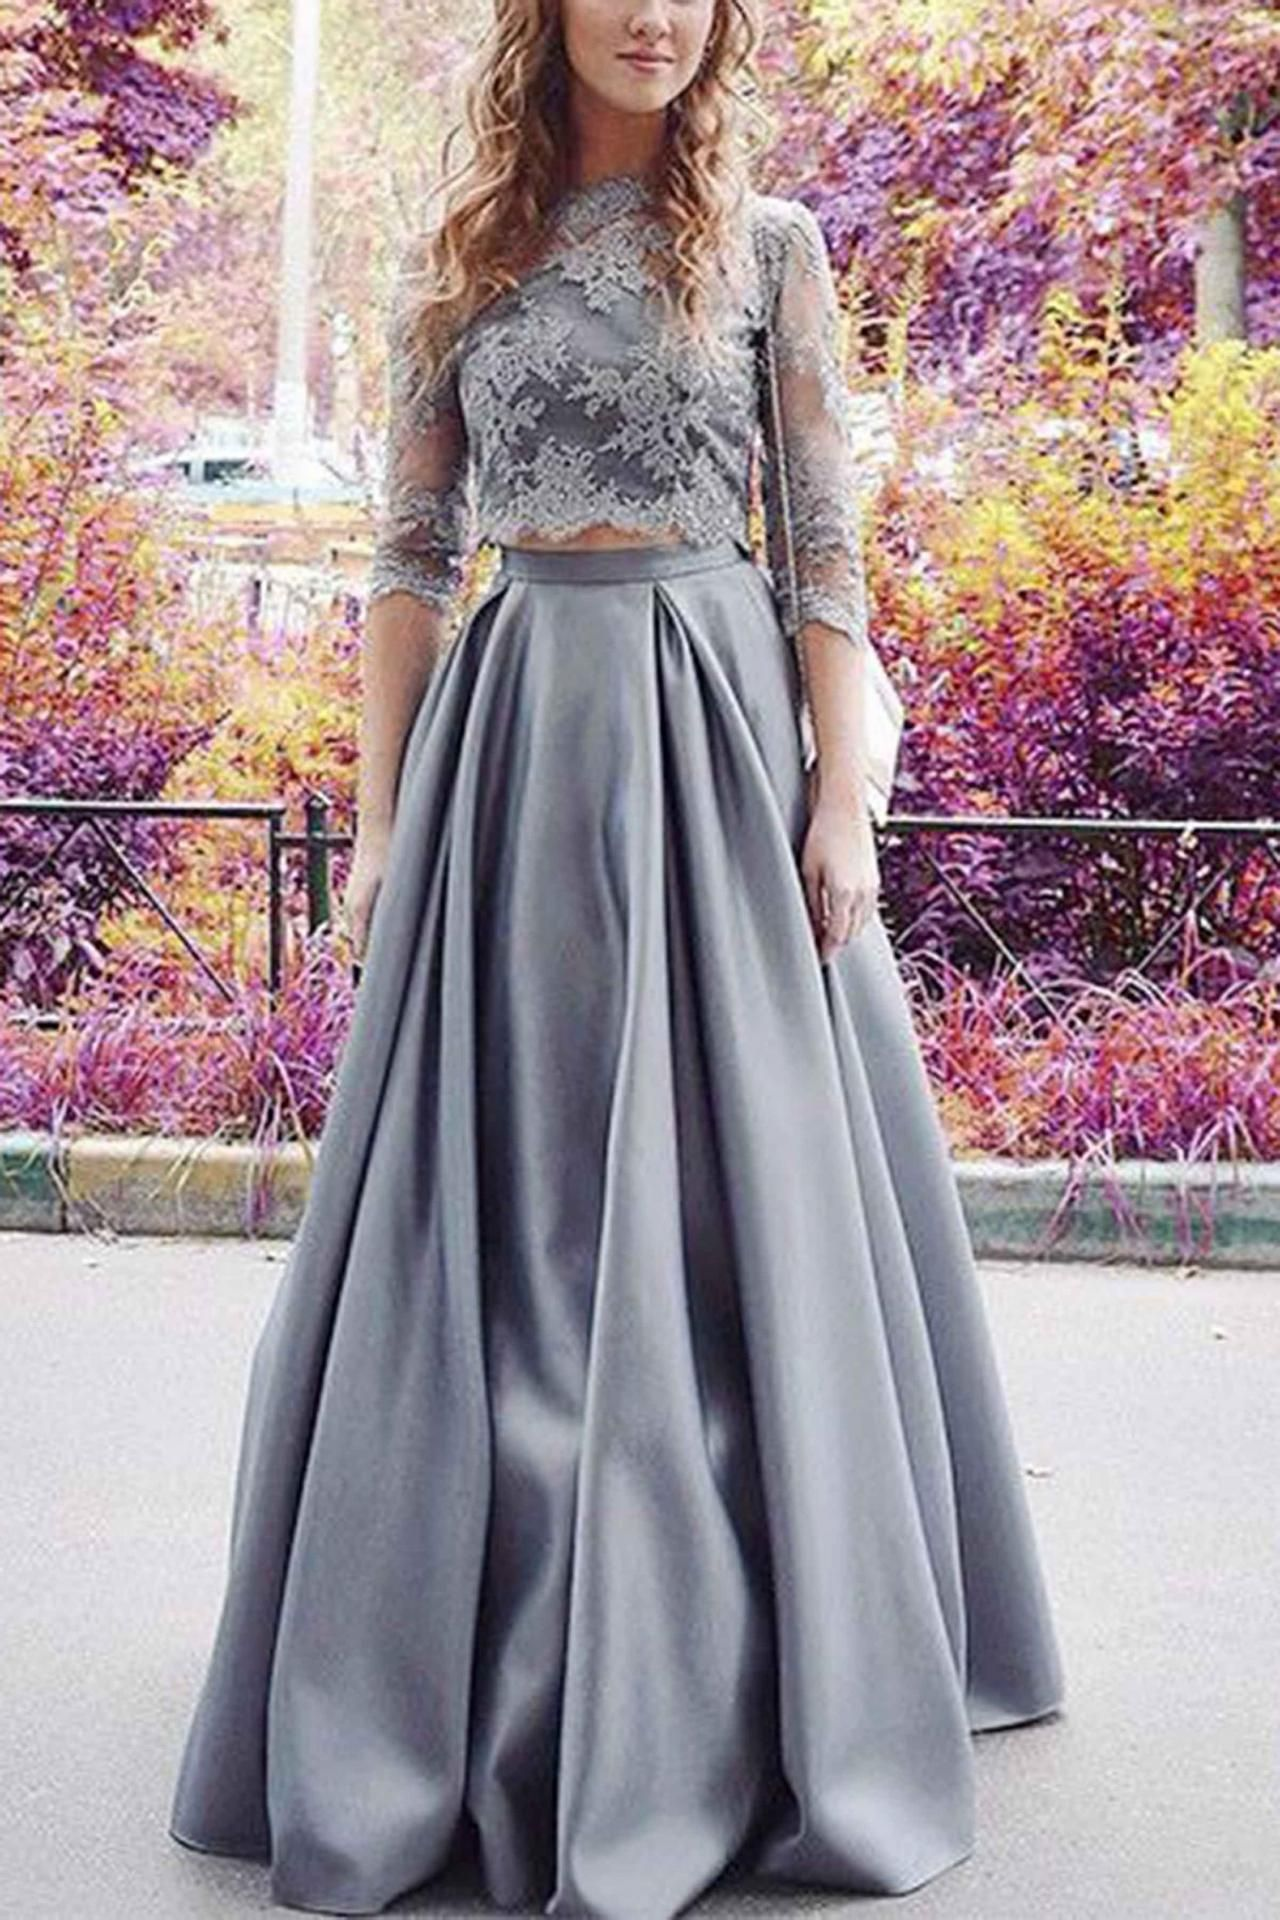 Purple twopiece lace floor length prom dress with midi skirt